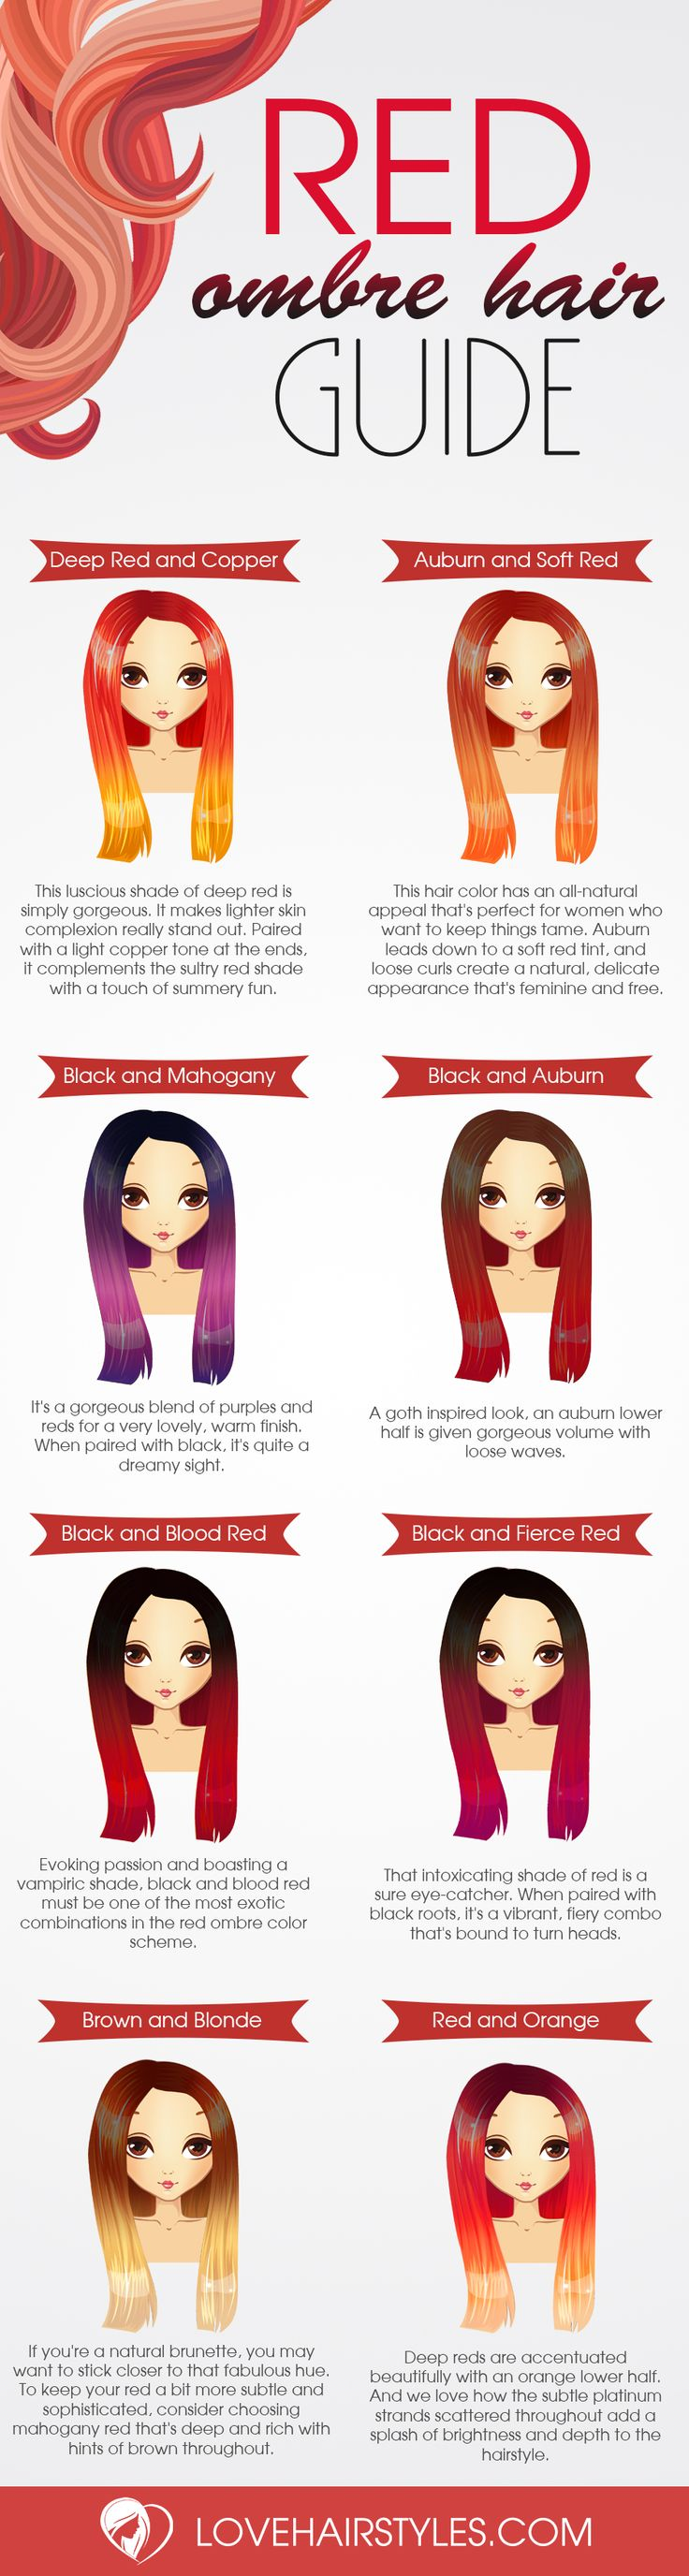 If you want a fun new hairstyle, why not try red ombre hair? There are a ton of options for you to choose. Check out our favorites!